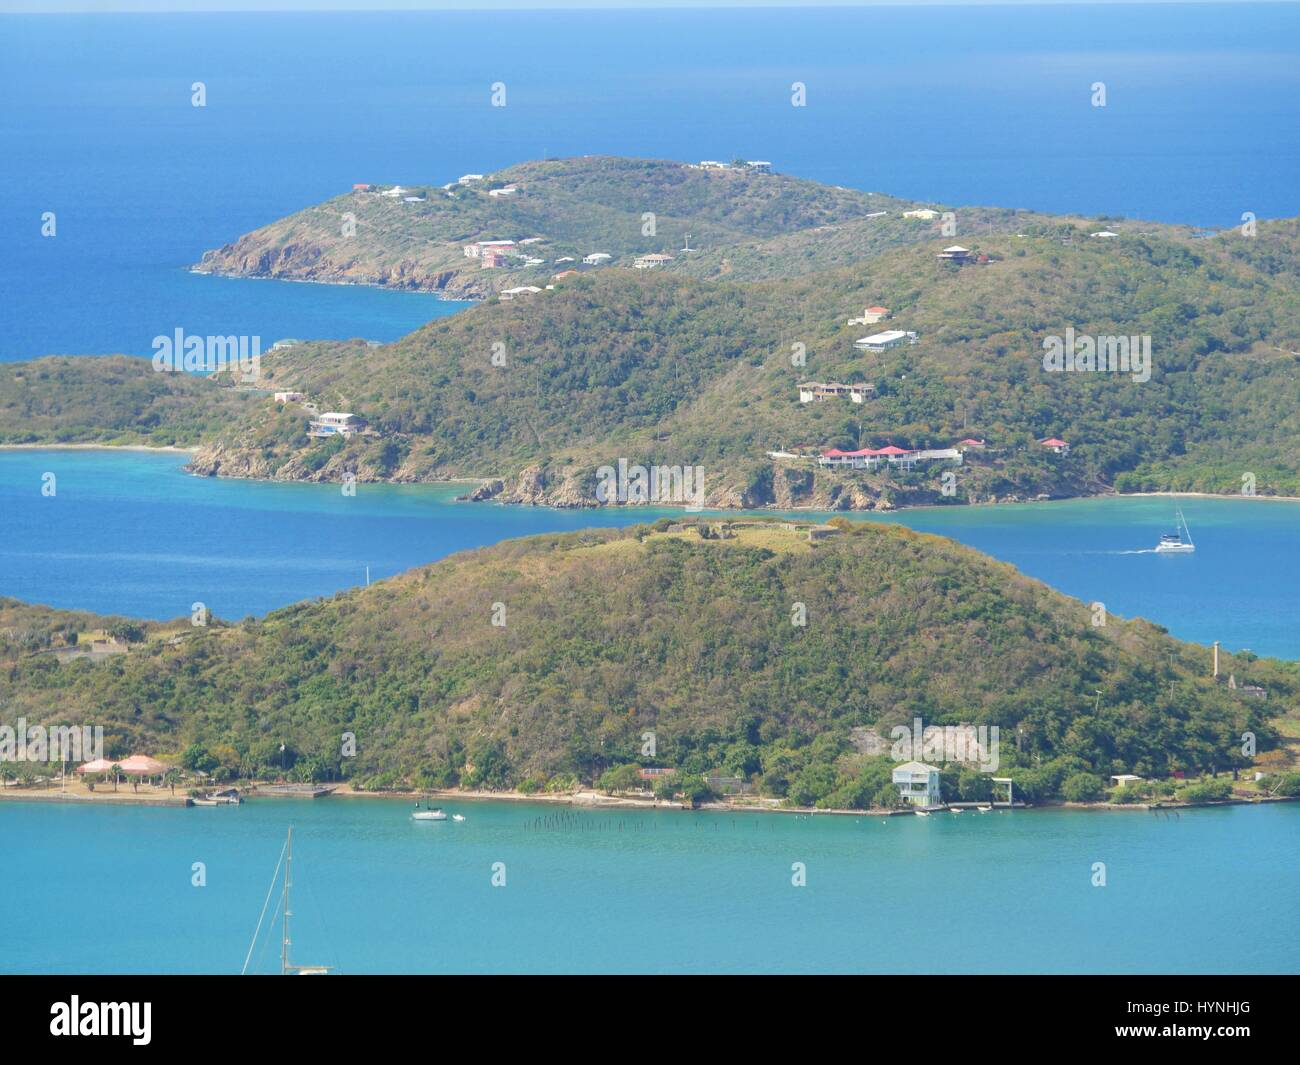 Islands facing Charlotte Amalie, St. Thomas Stock Photo